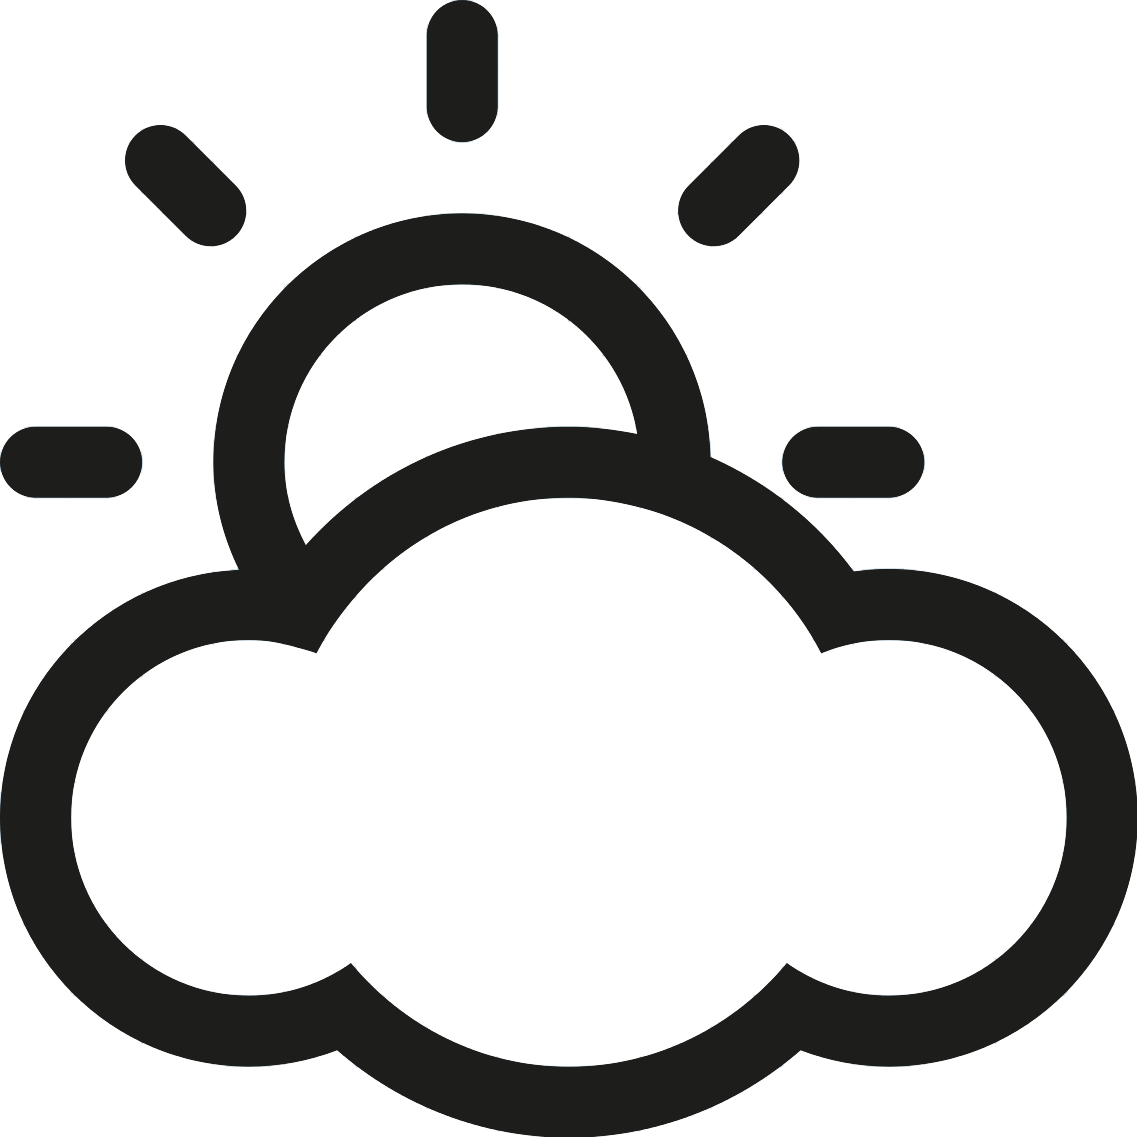 vector free library Partly cloudy clipart black and white. Pictures posters news videos